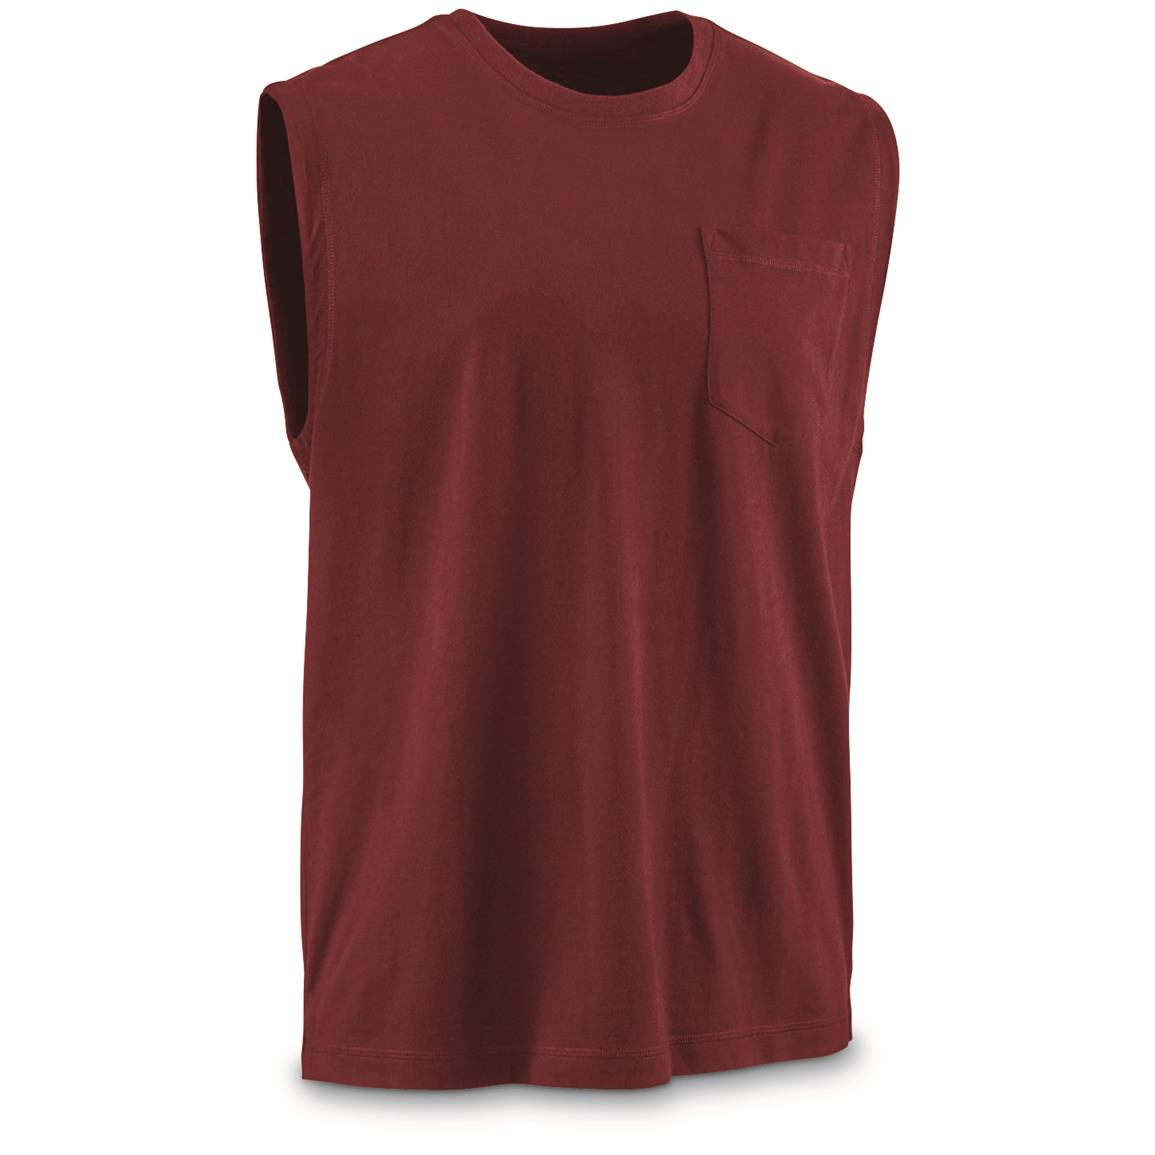 Guide Gear Men's Stain Kicker Sleeveless Pocket T Shirt With Teflon, Red Cardinal